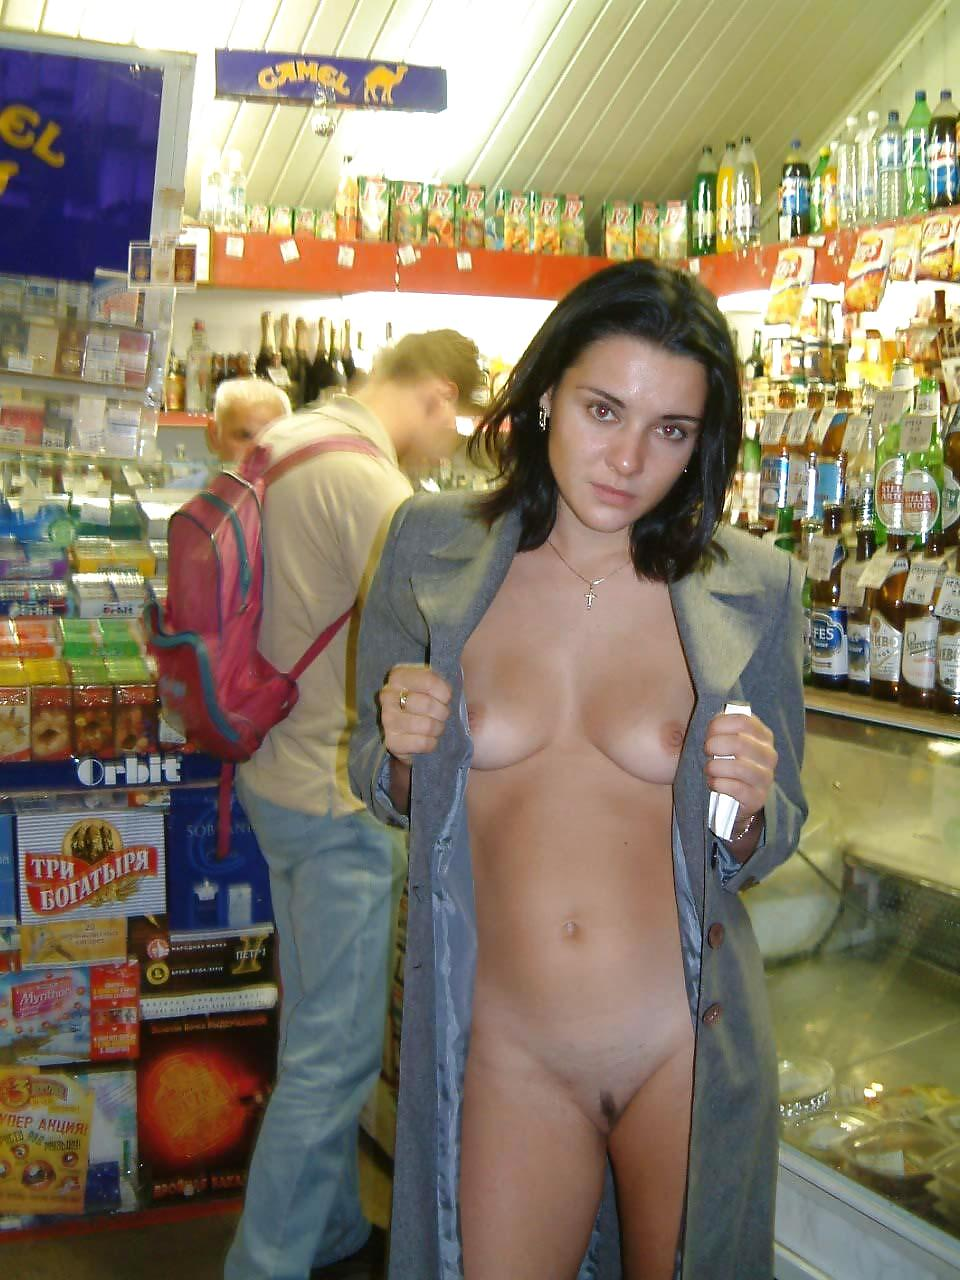 People in public places nude